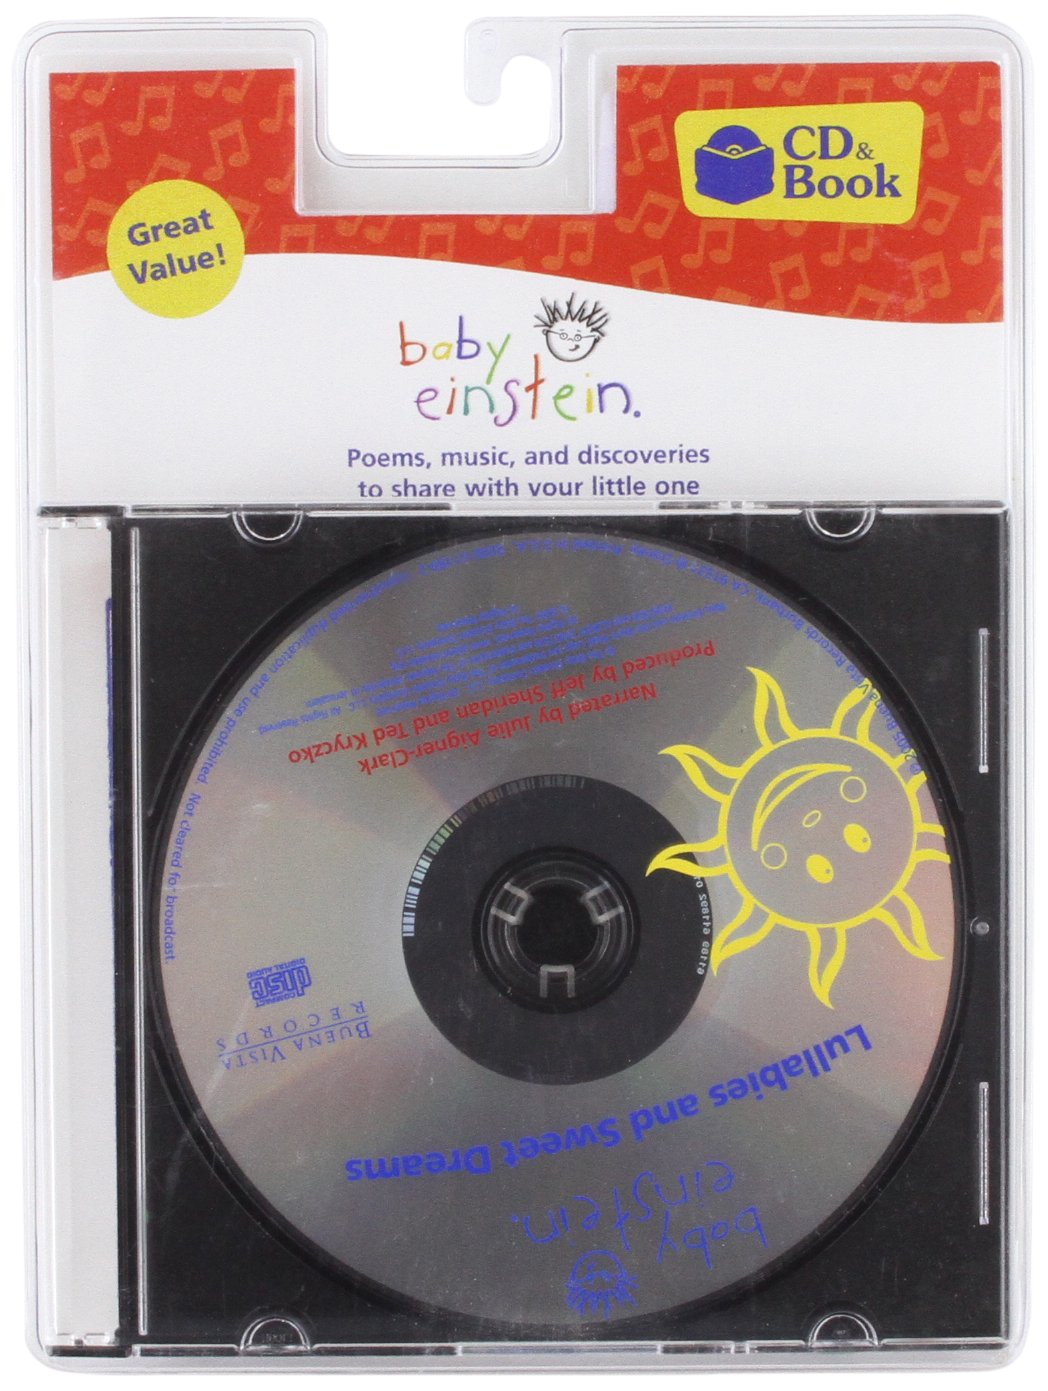 Baby Einstein: Lullabies and Sweet Dreams (Baby Einstein (Audio)) by Brand: Buena Vista Records